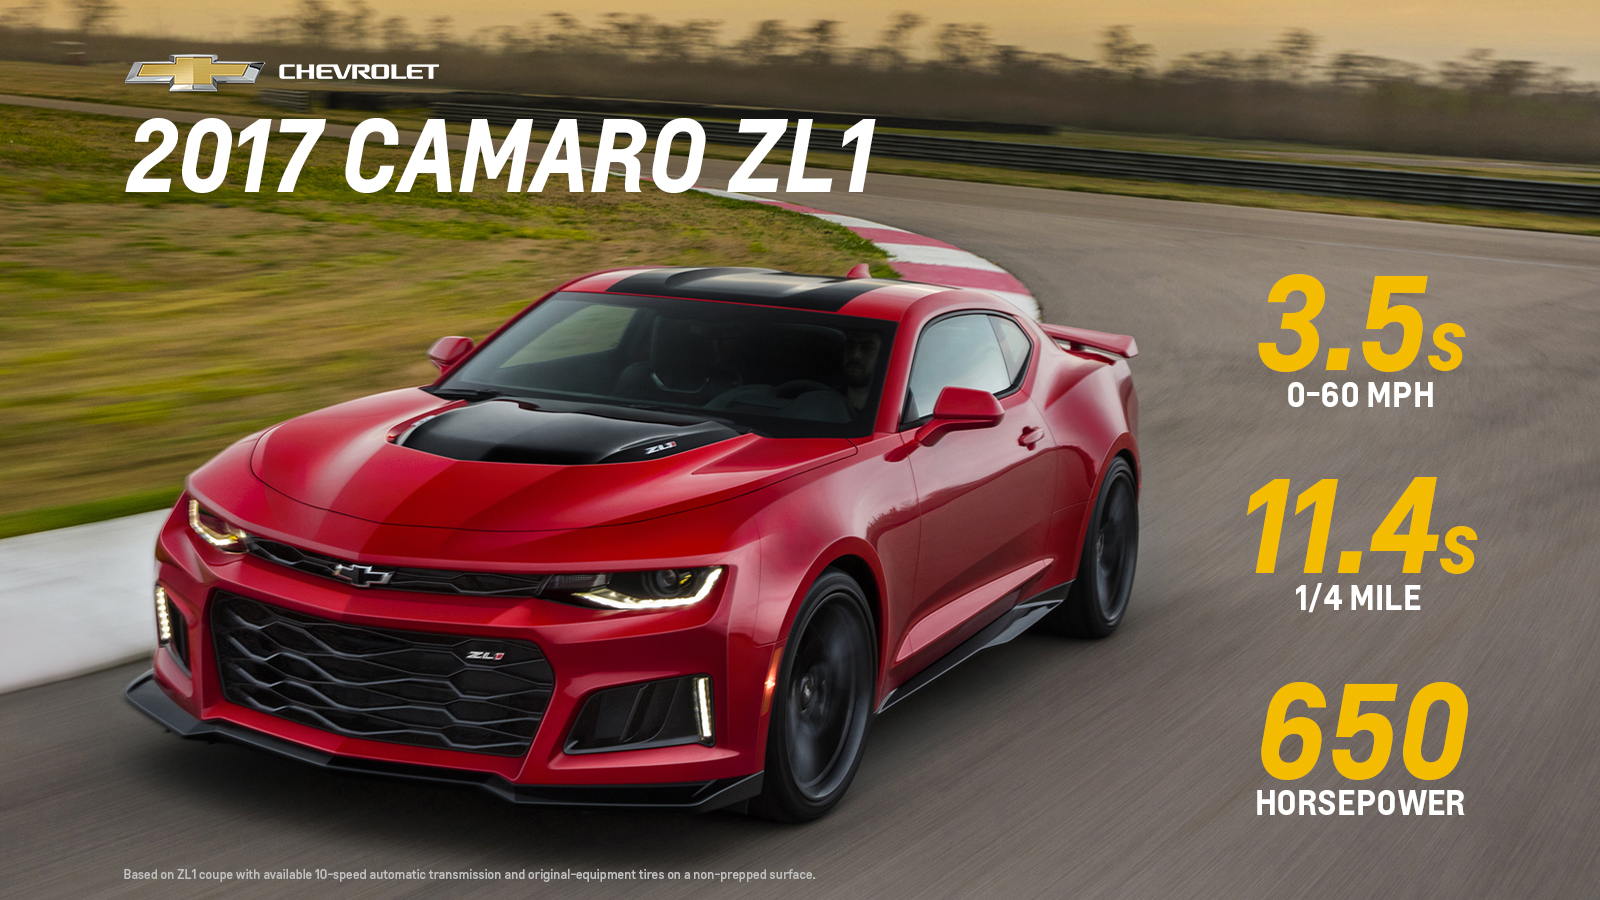 Camaro chevy camaro 1le : 2017 Camaro ZL1 and 1LE: Get Used To Our Taillights